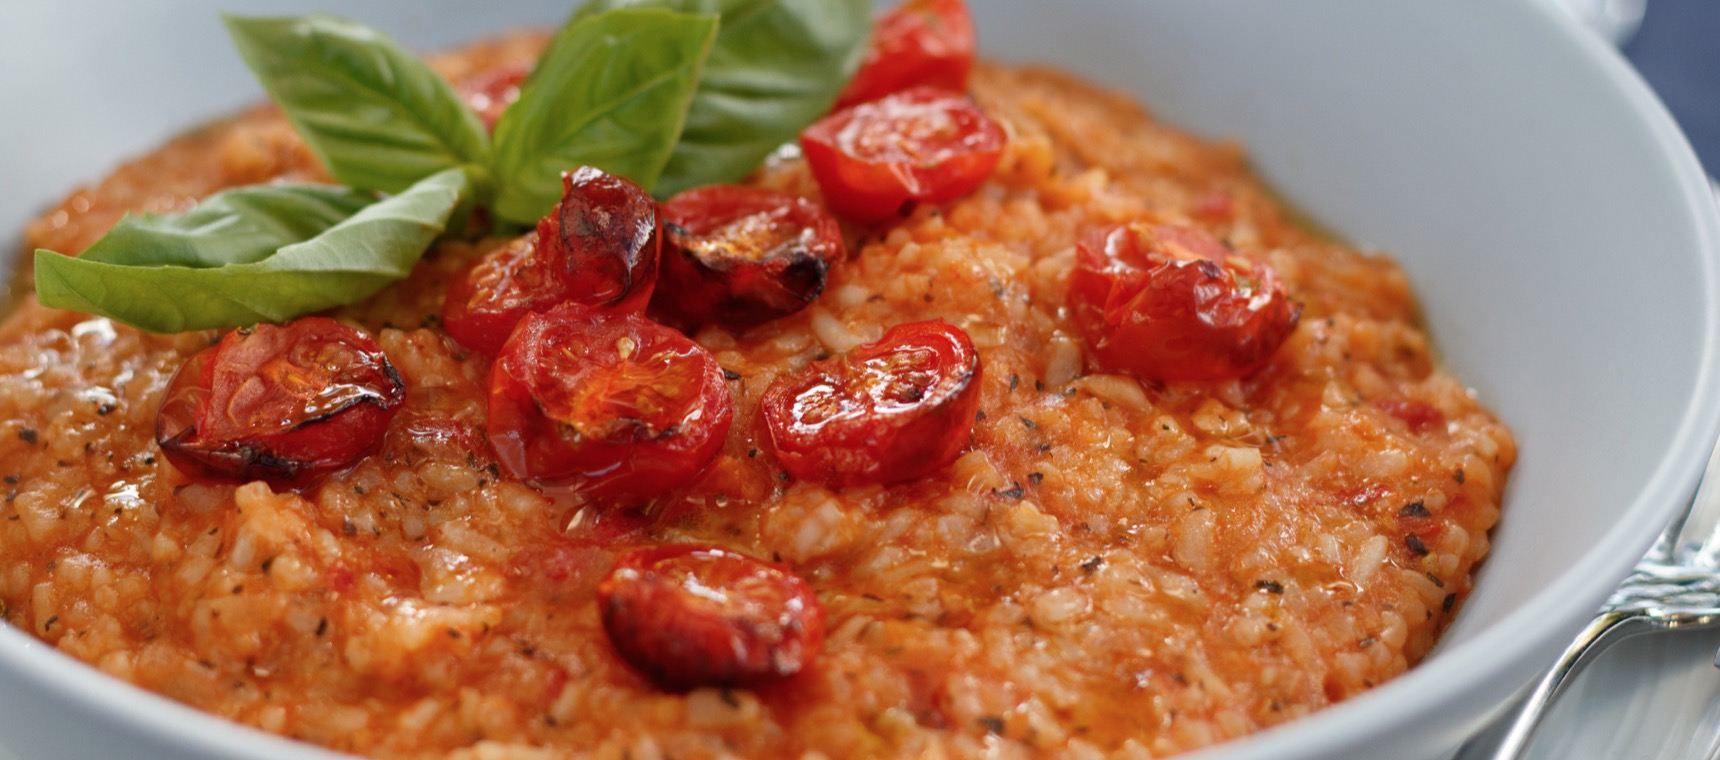 Roasted Tomato and Basil Risotto